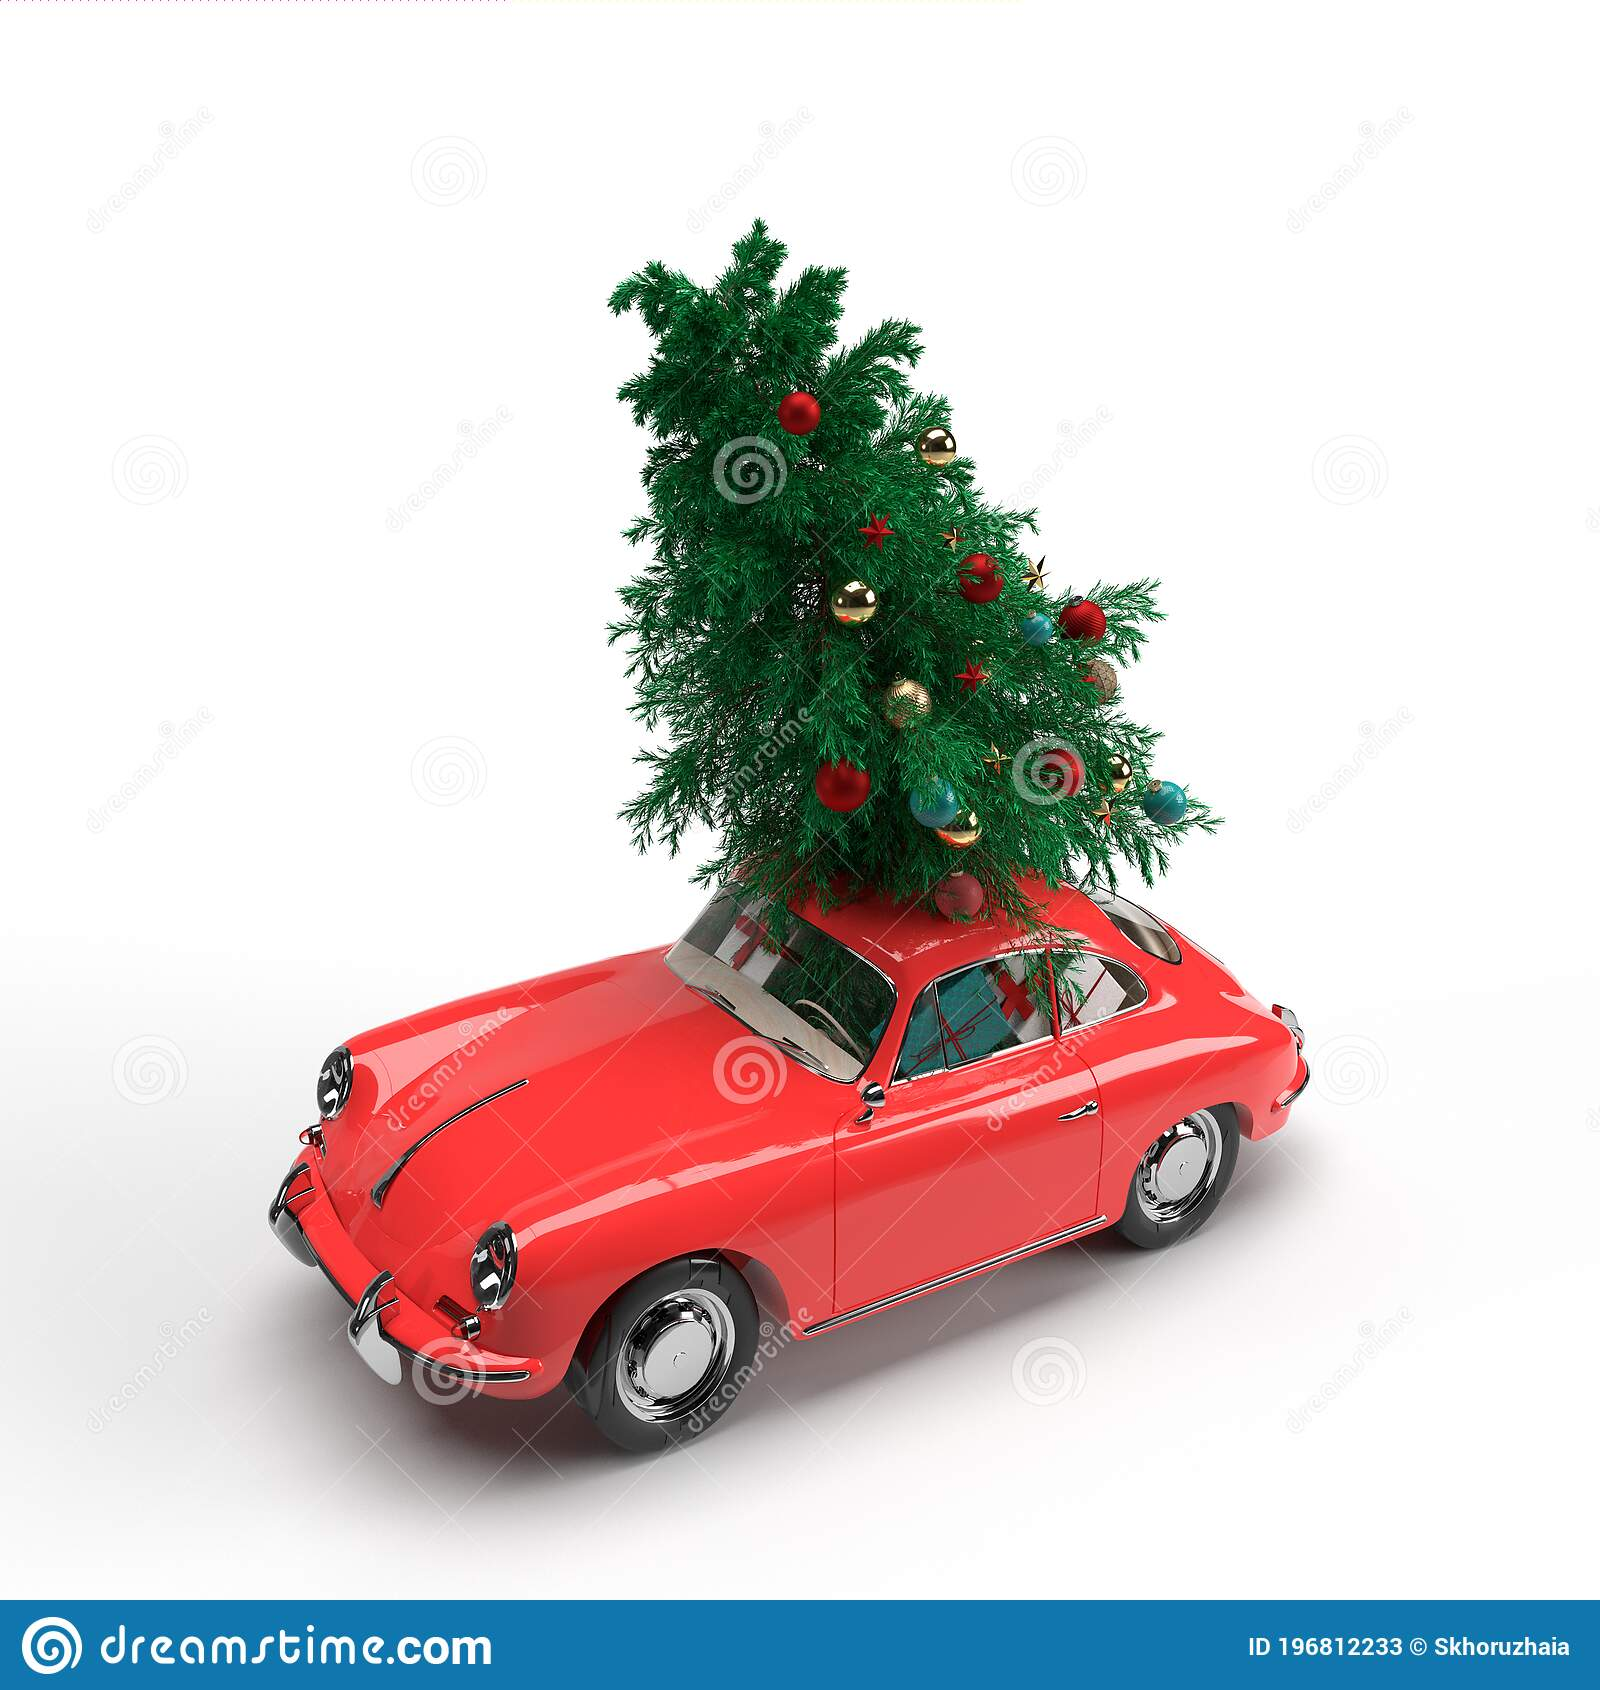 3d Render Red Vintage Car With Christmas Tree And Gifts On White Background Christmas Card Krasnodar 18 July 2020 Stock Illustration Illustration Of Shiny Winter 196812233